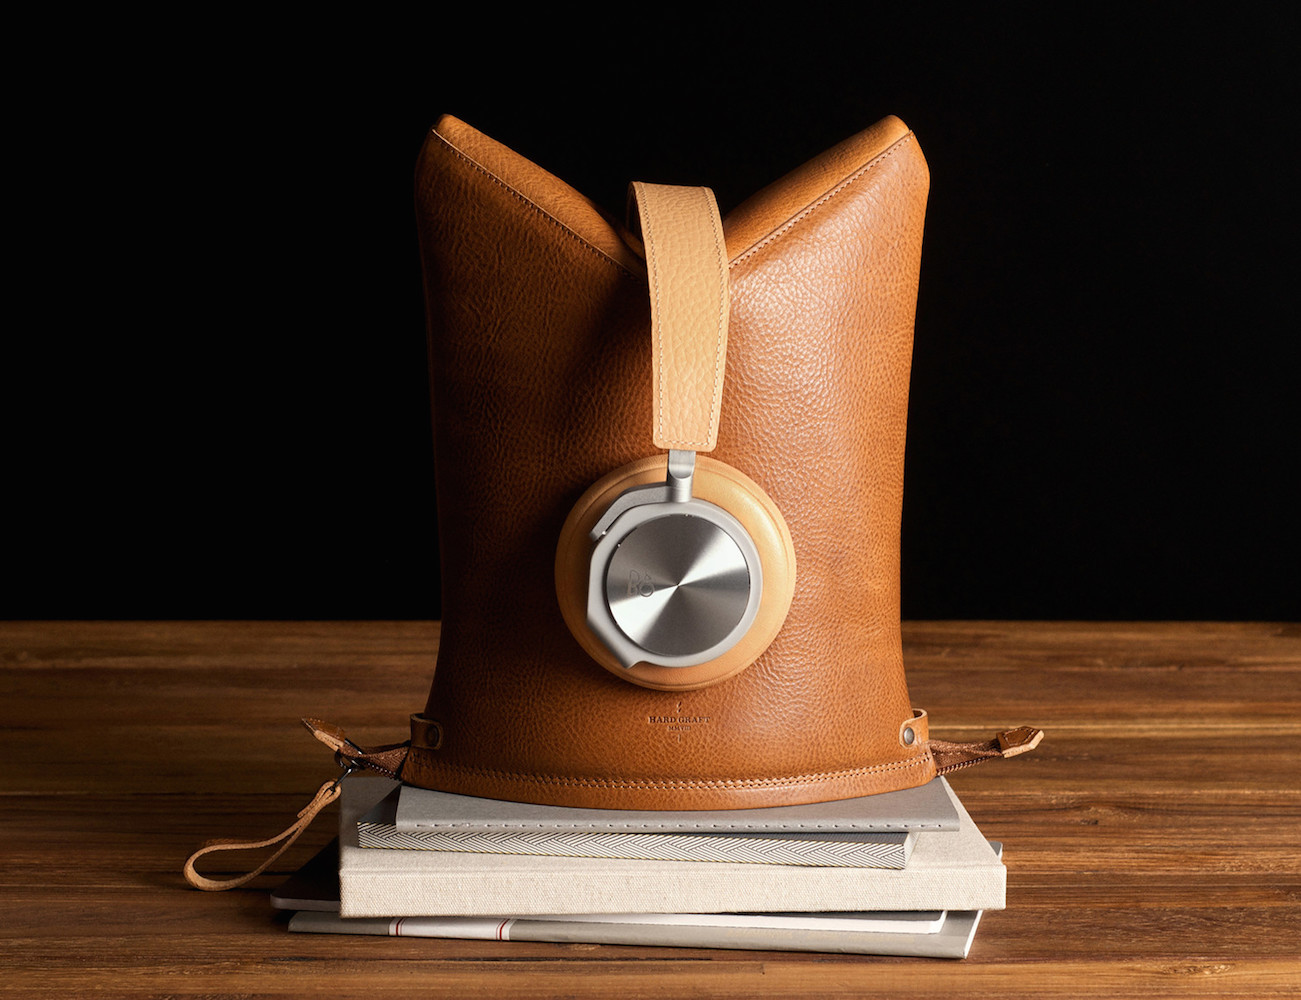 Peak+Headphone+Case+%26amp%3B+Stand+By+Hard+Graft